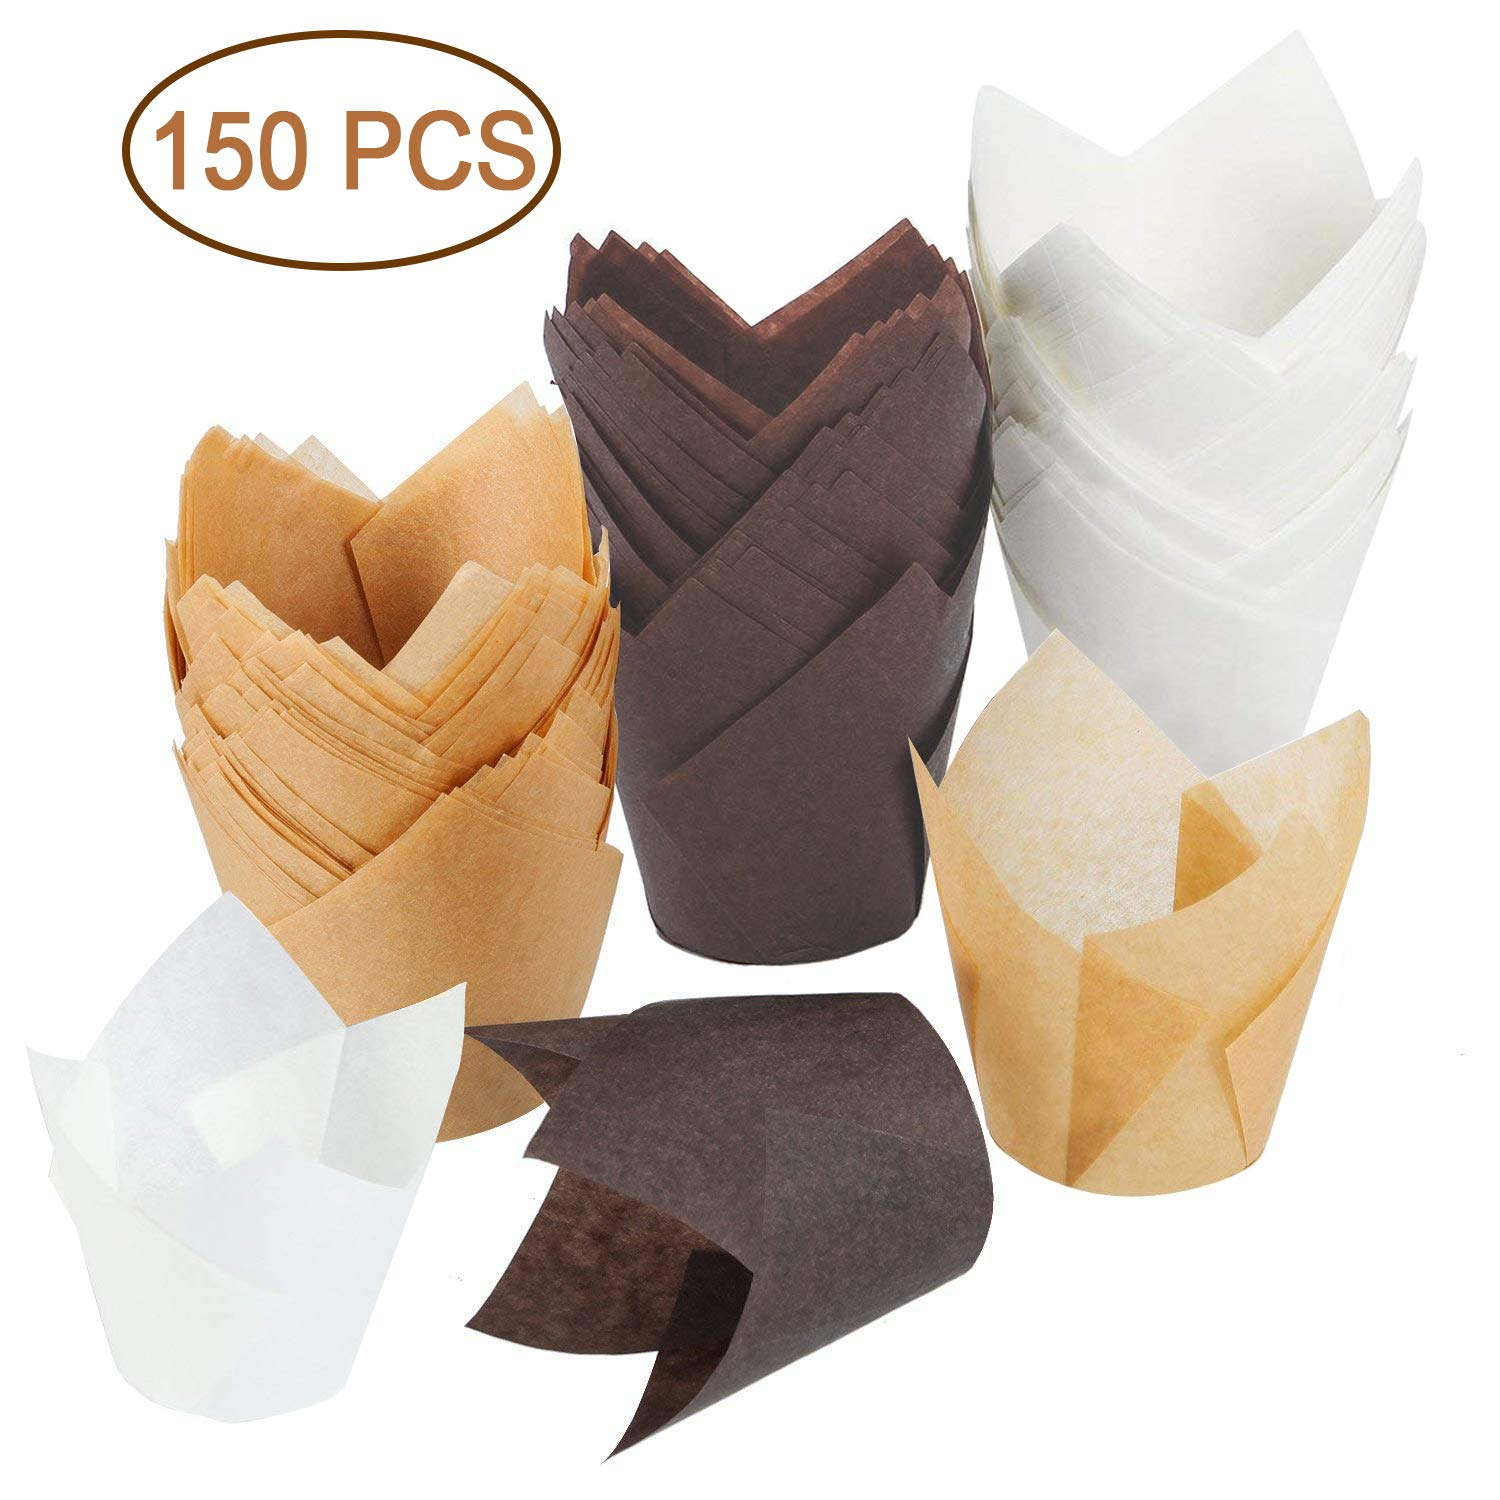 150 Pieces Tulip Baking Paper Cups Cupcake or Muffin Liners Wrappers, Tulip Baking Cup Holder for Weddings, Birthdays, Parties (Brown, Natural Color, White)